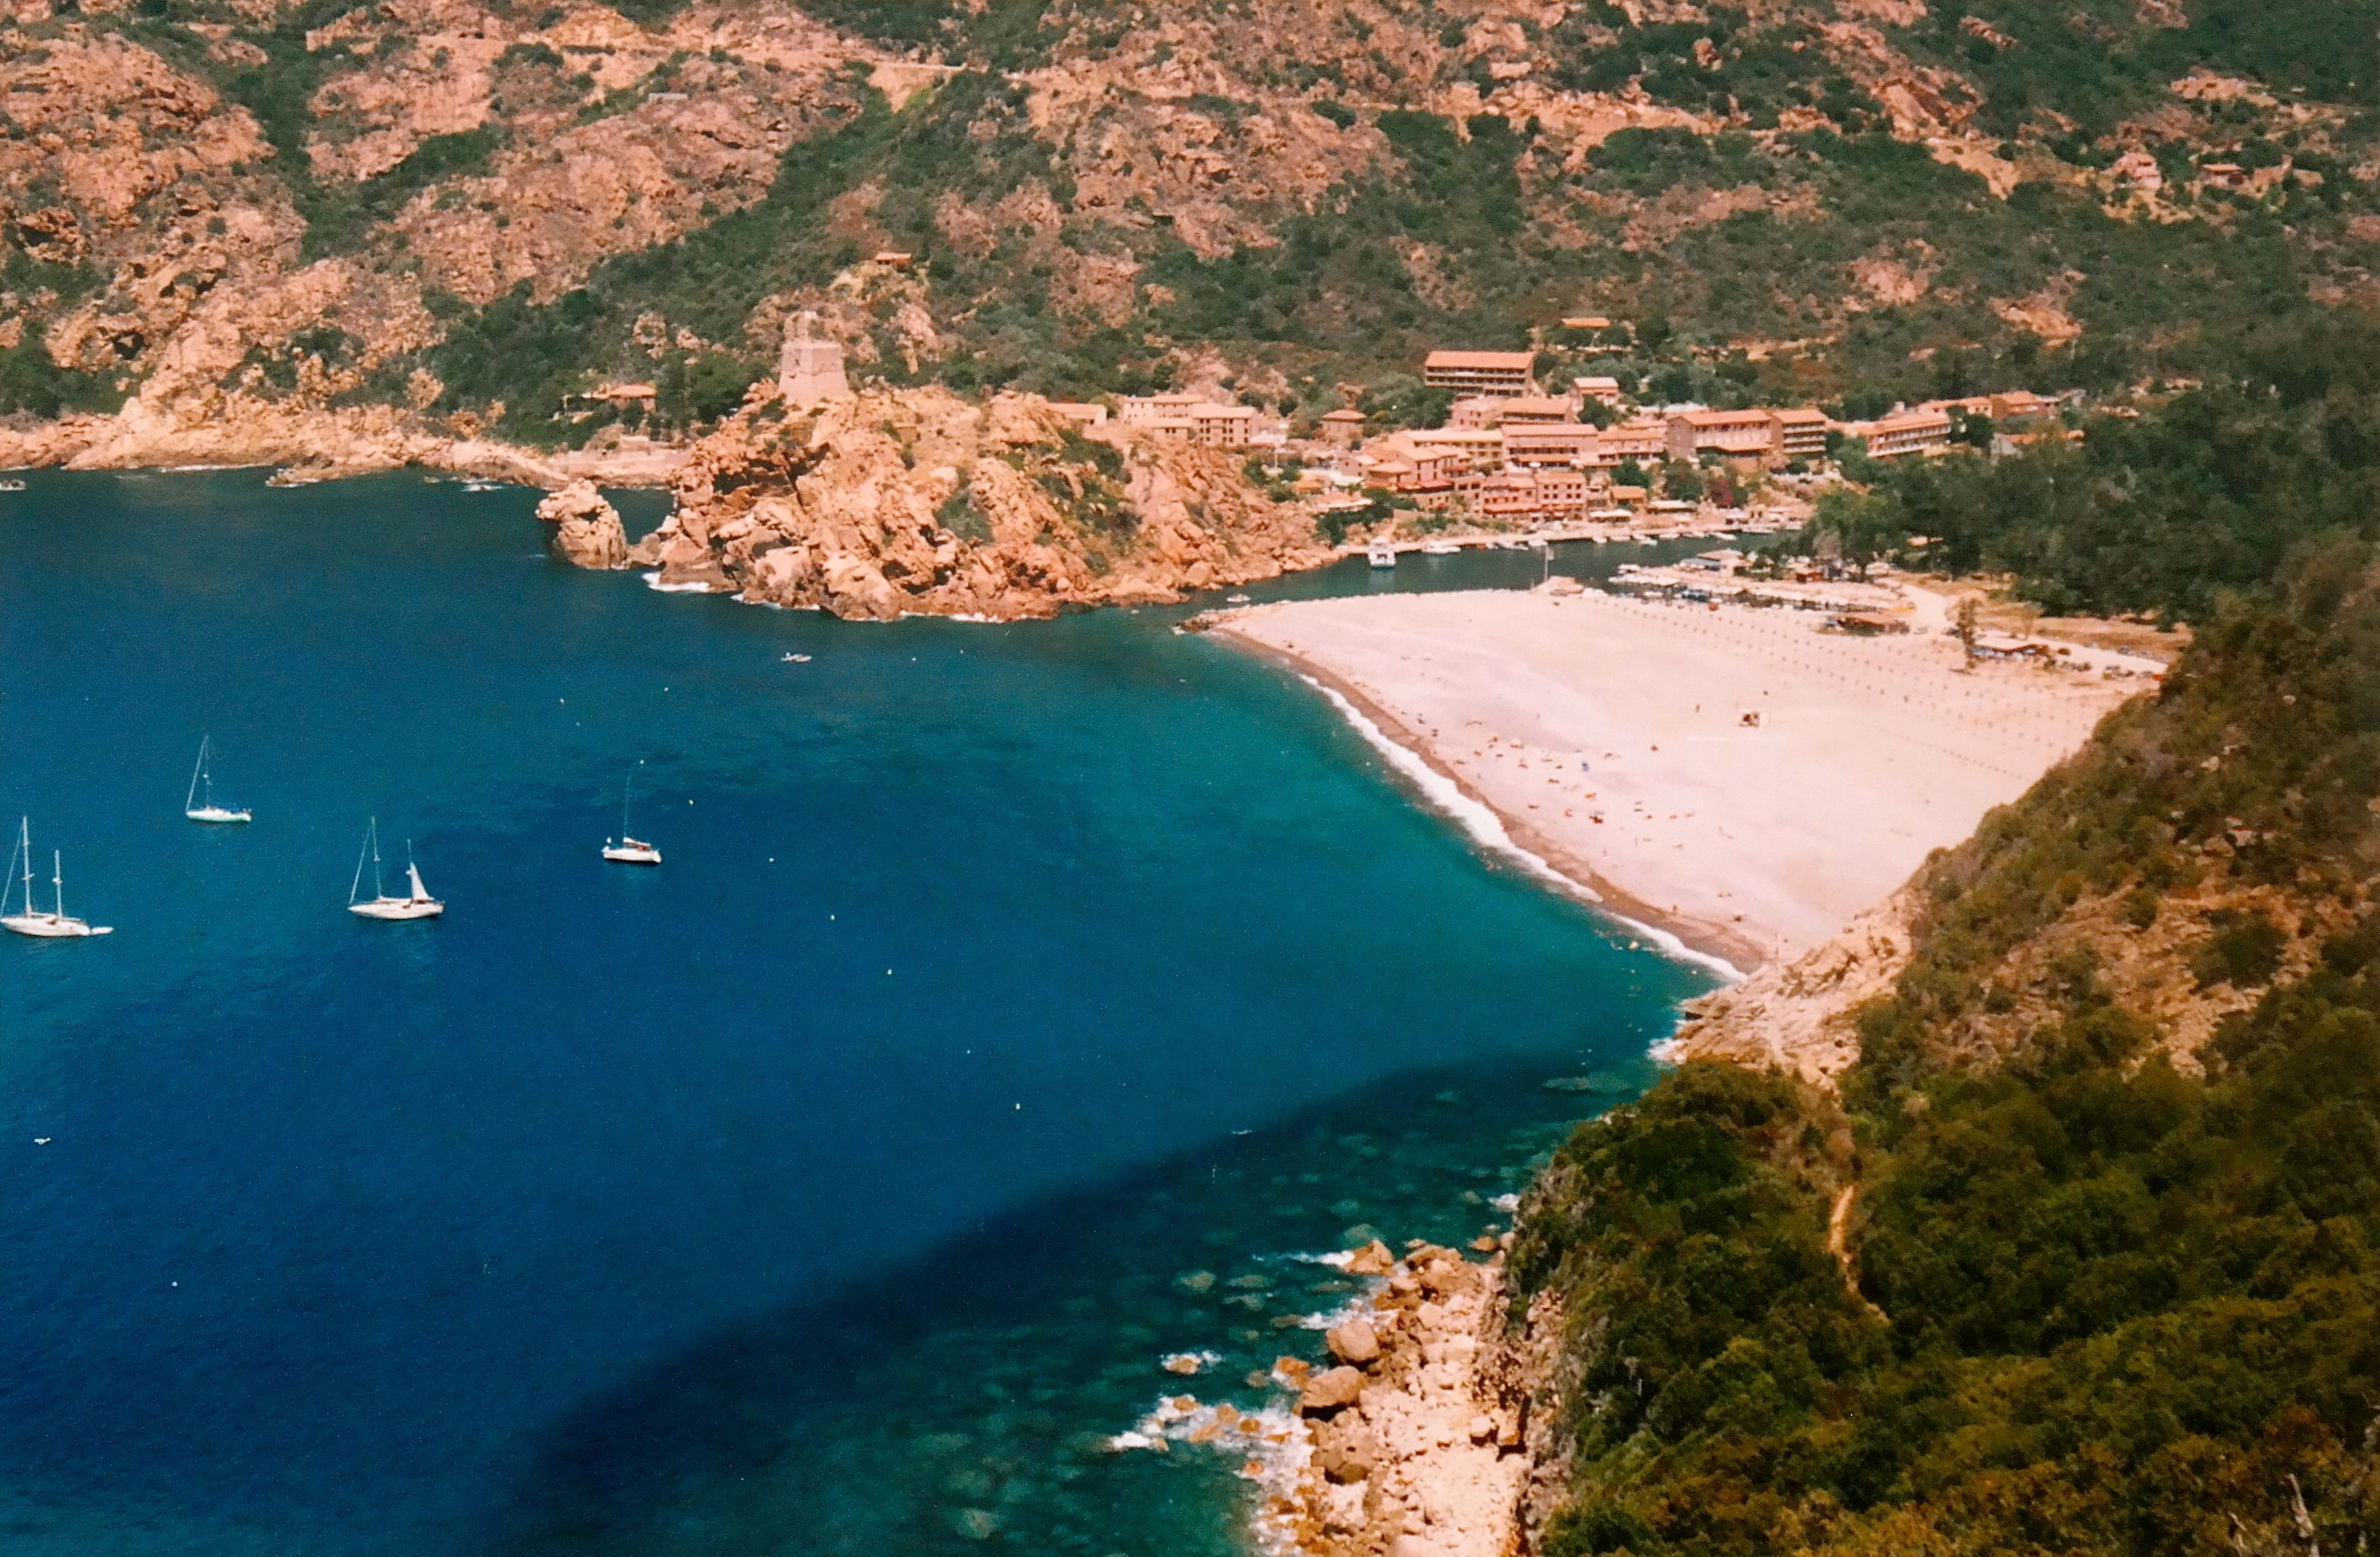 Most Beautiful Islands: French Islands - Corsica